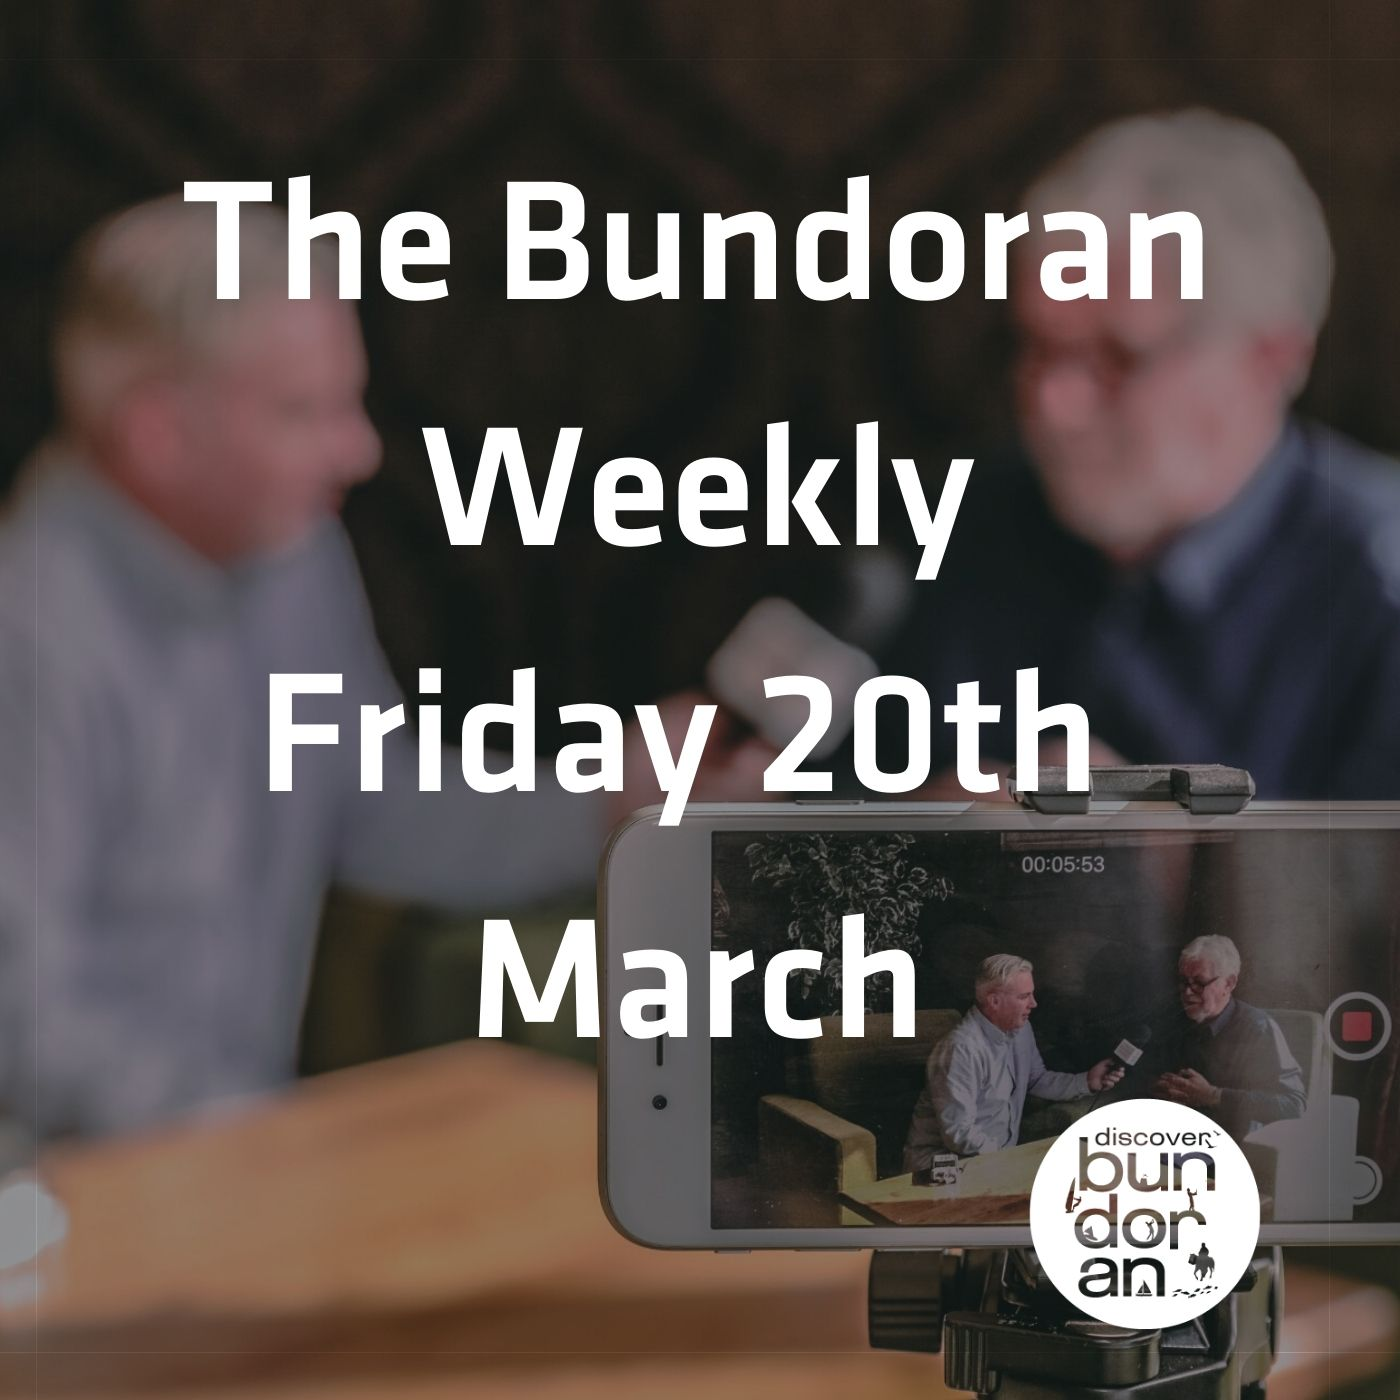 083 - The Bundoran Weekly - Friday 20th March 2020